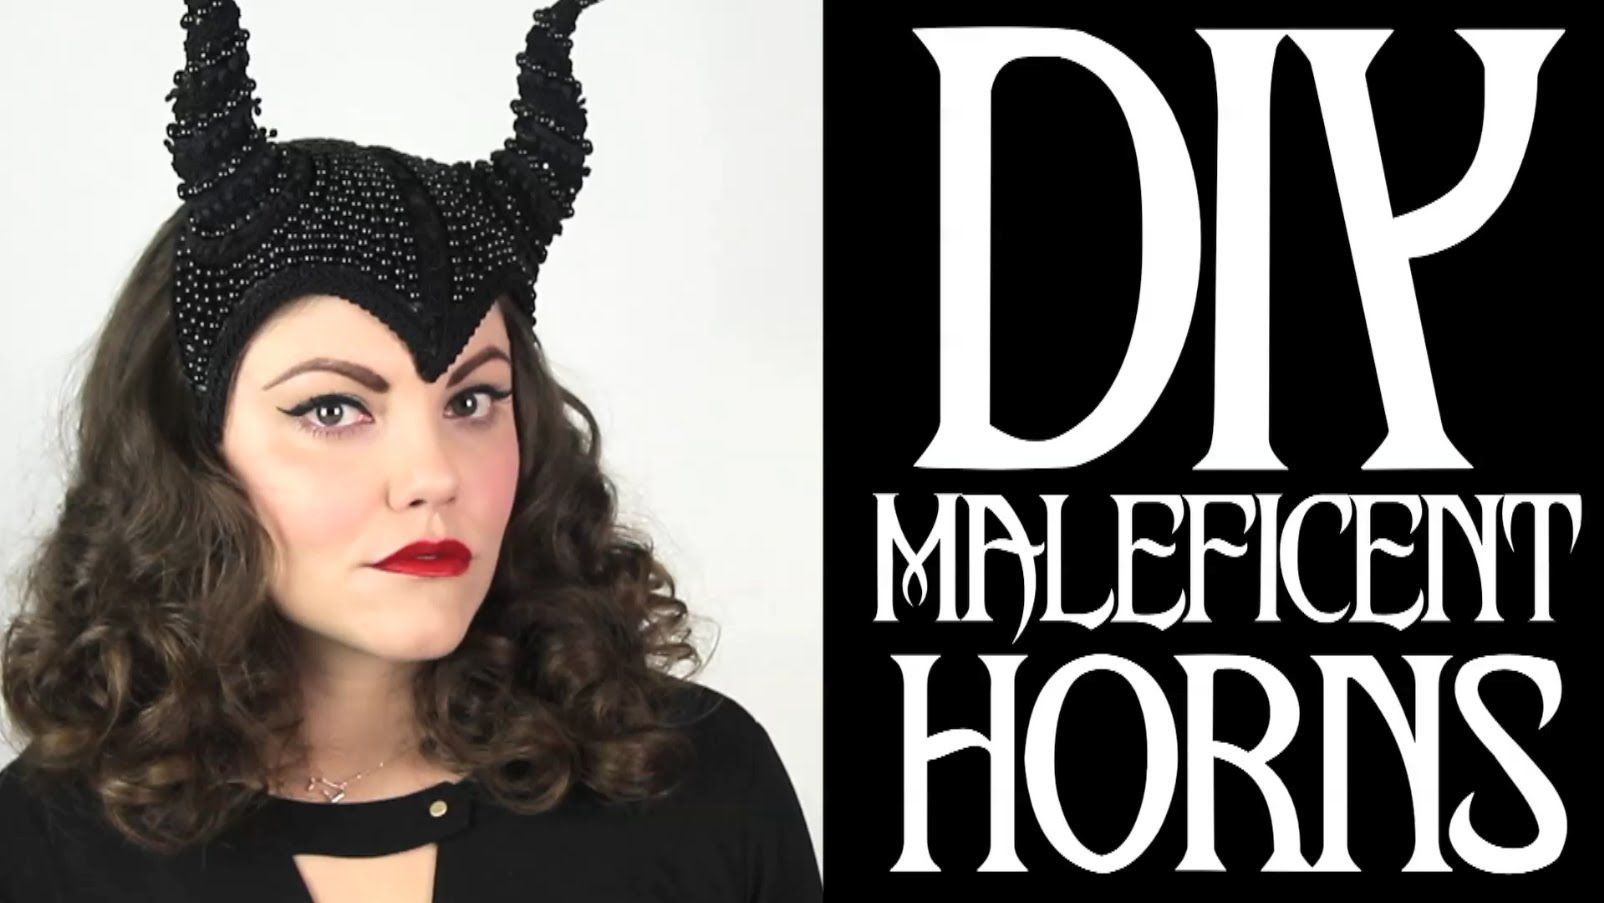 Tutorial for a badass diy maleficent horned headwear great tutorial for a badass diy maleficent horned headwear great tutorial for making fascinator kind of solutioingenieria Image collections